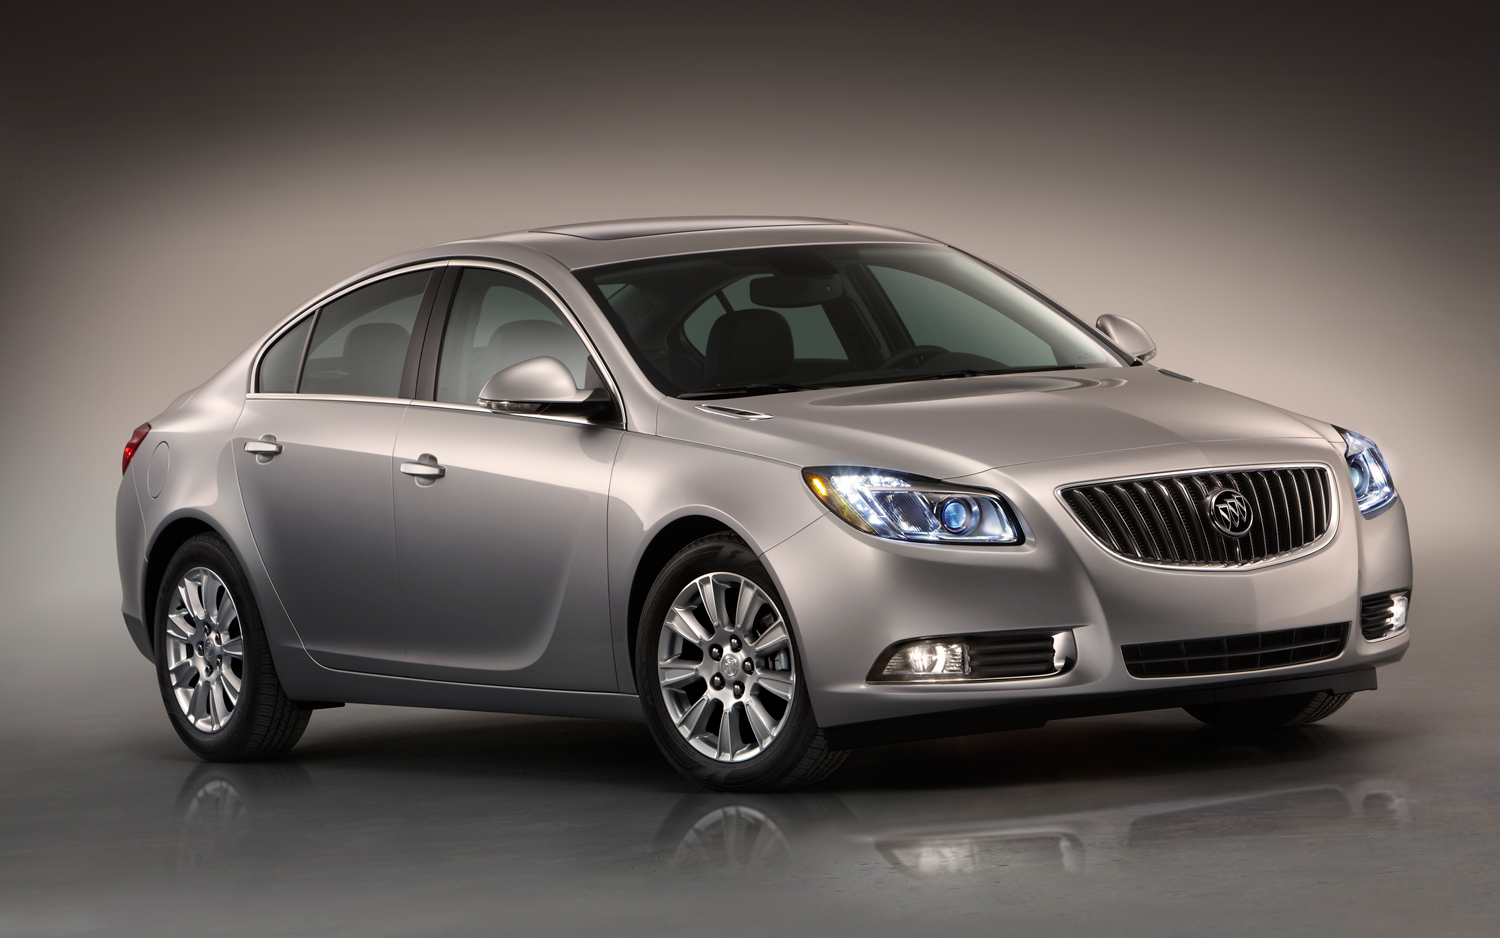 Regal System 2013 Buick Regal Starts At 29 990 Mild Hybrid System Now